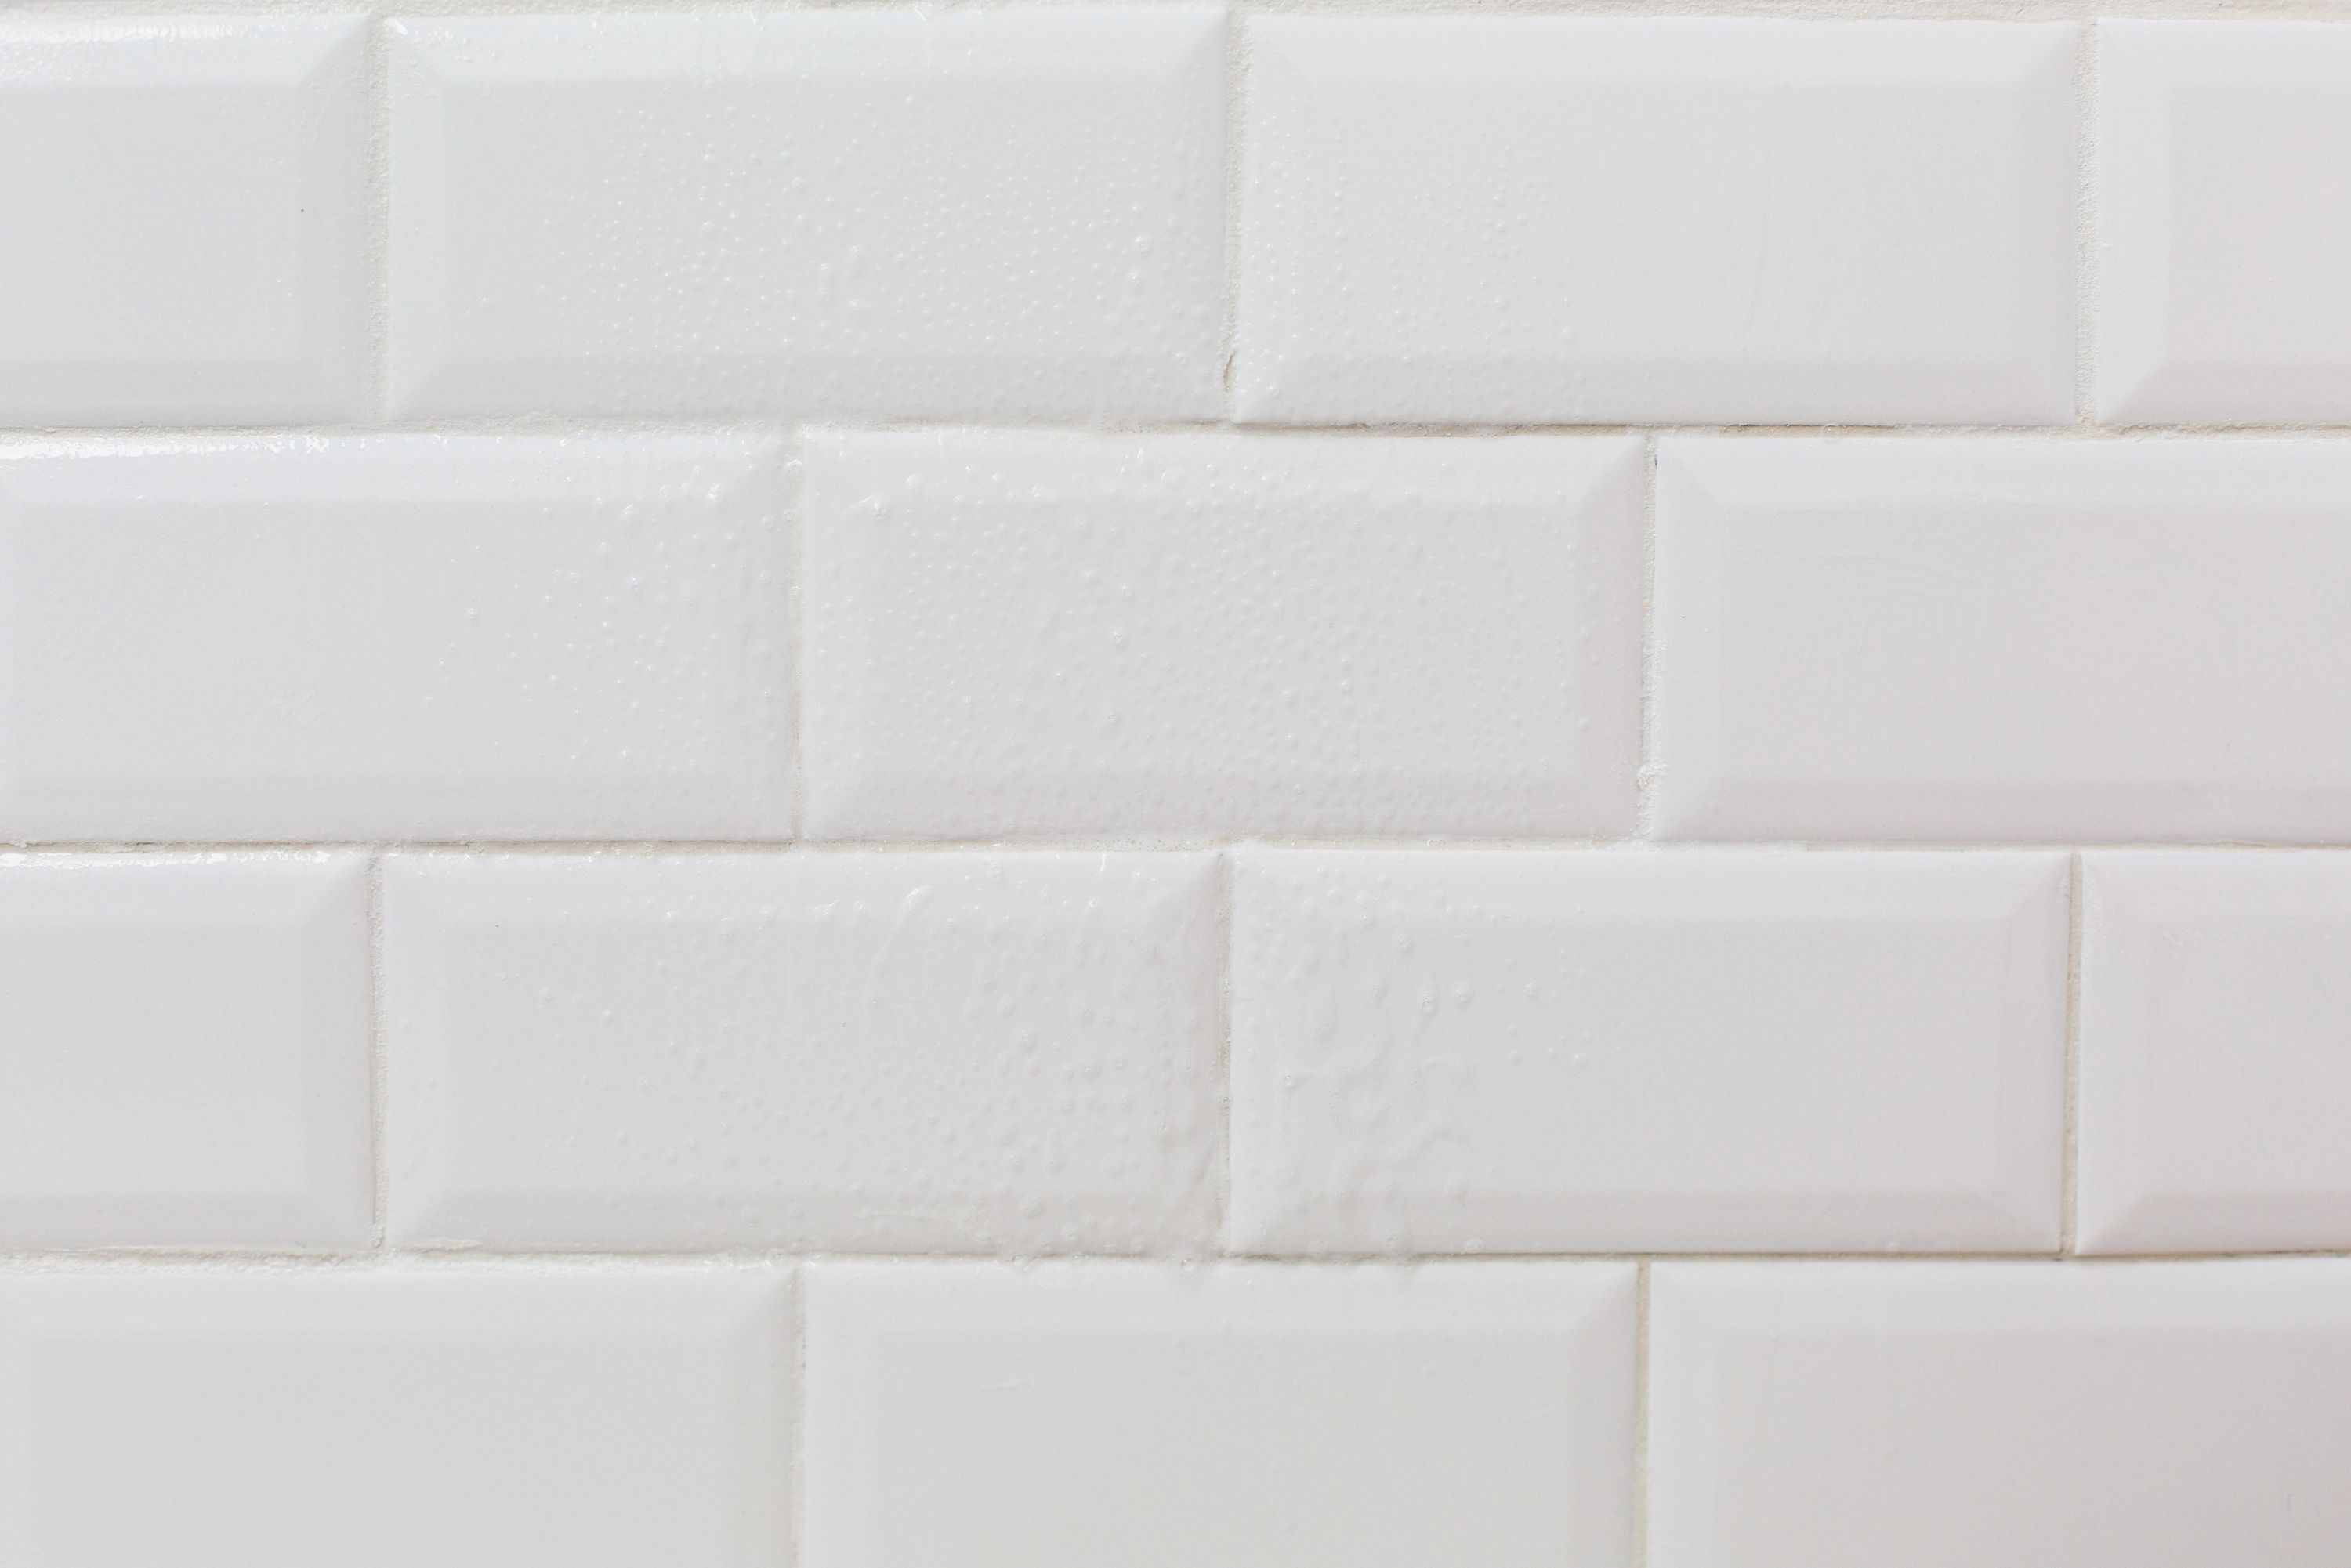 how to clean grout haze